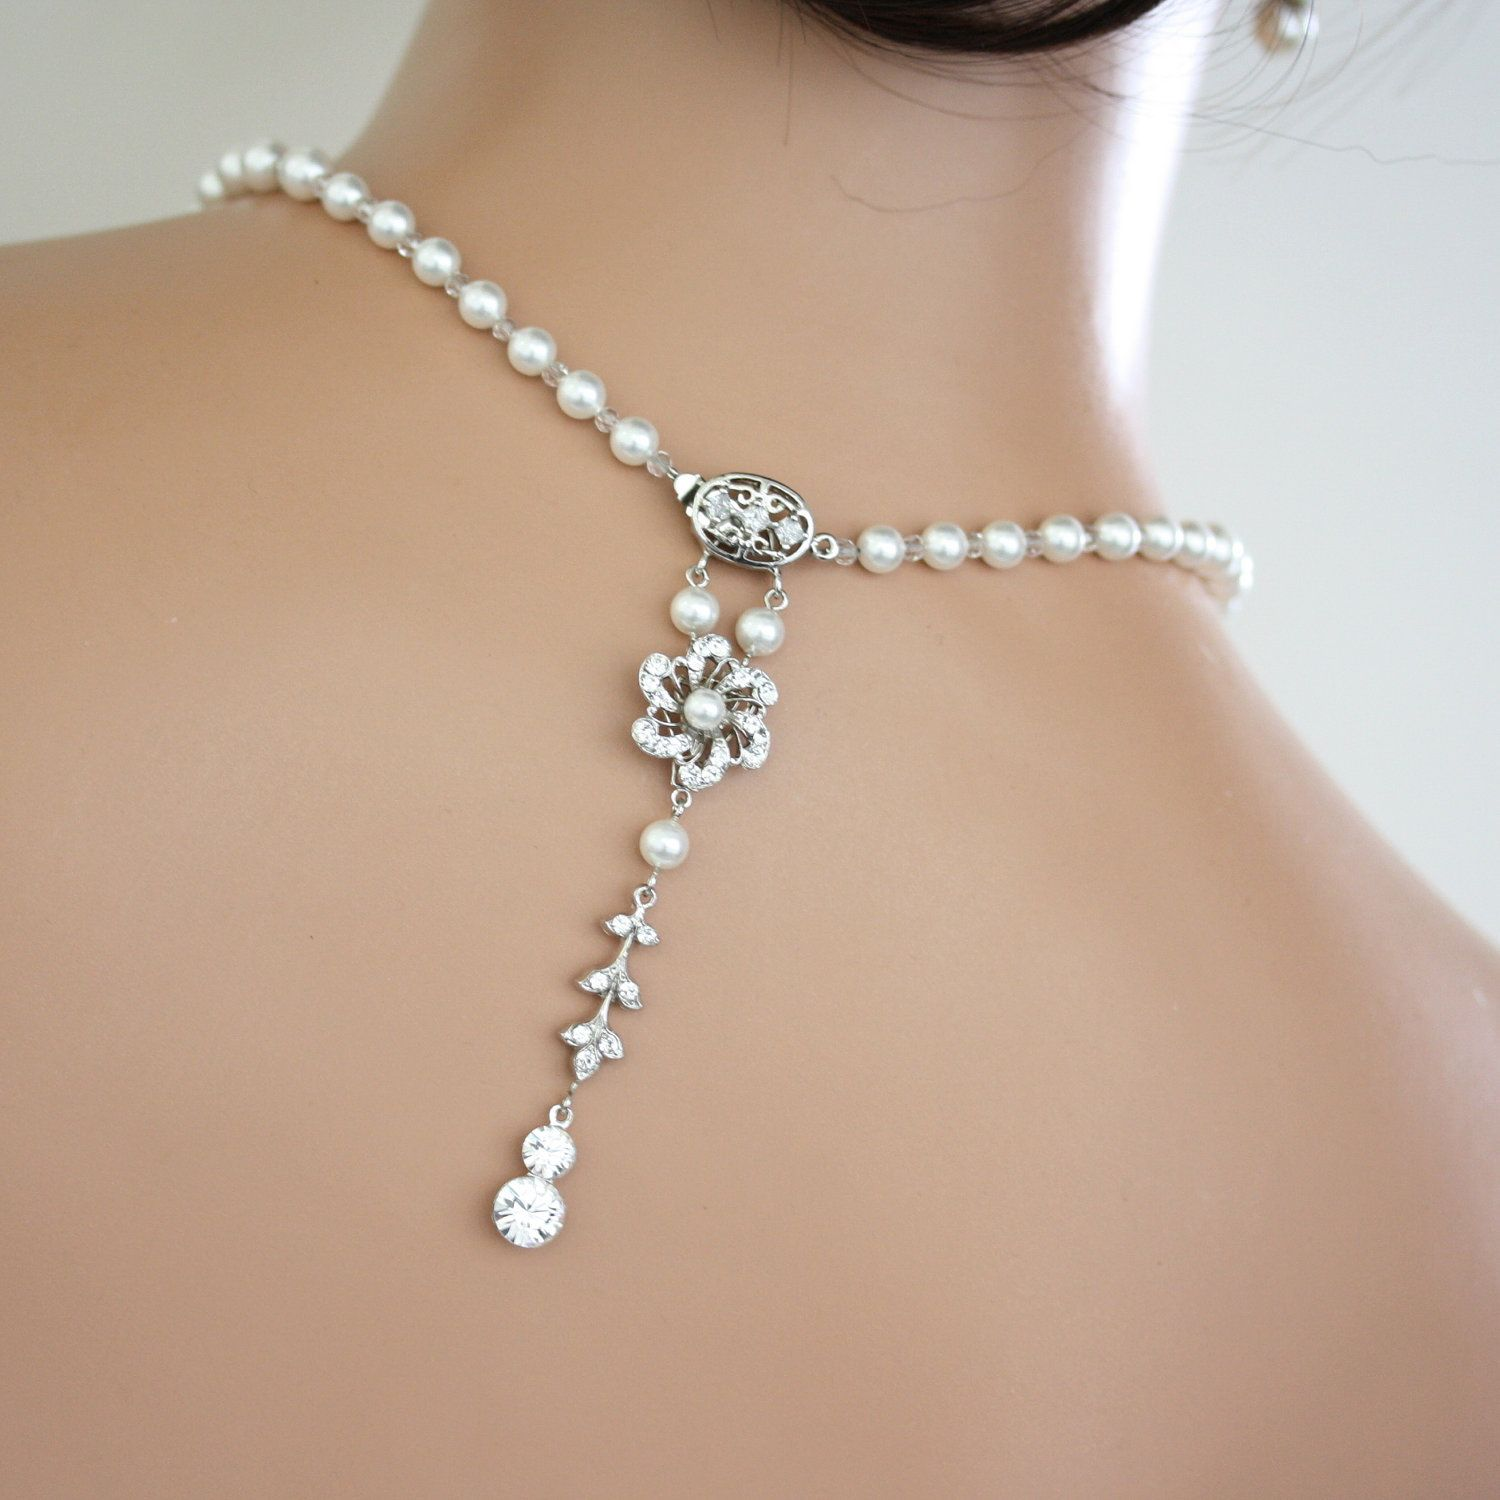 Bridal necklace back drop pearl necklace white pearl crystal art